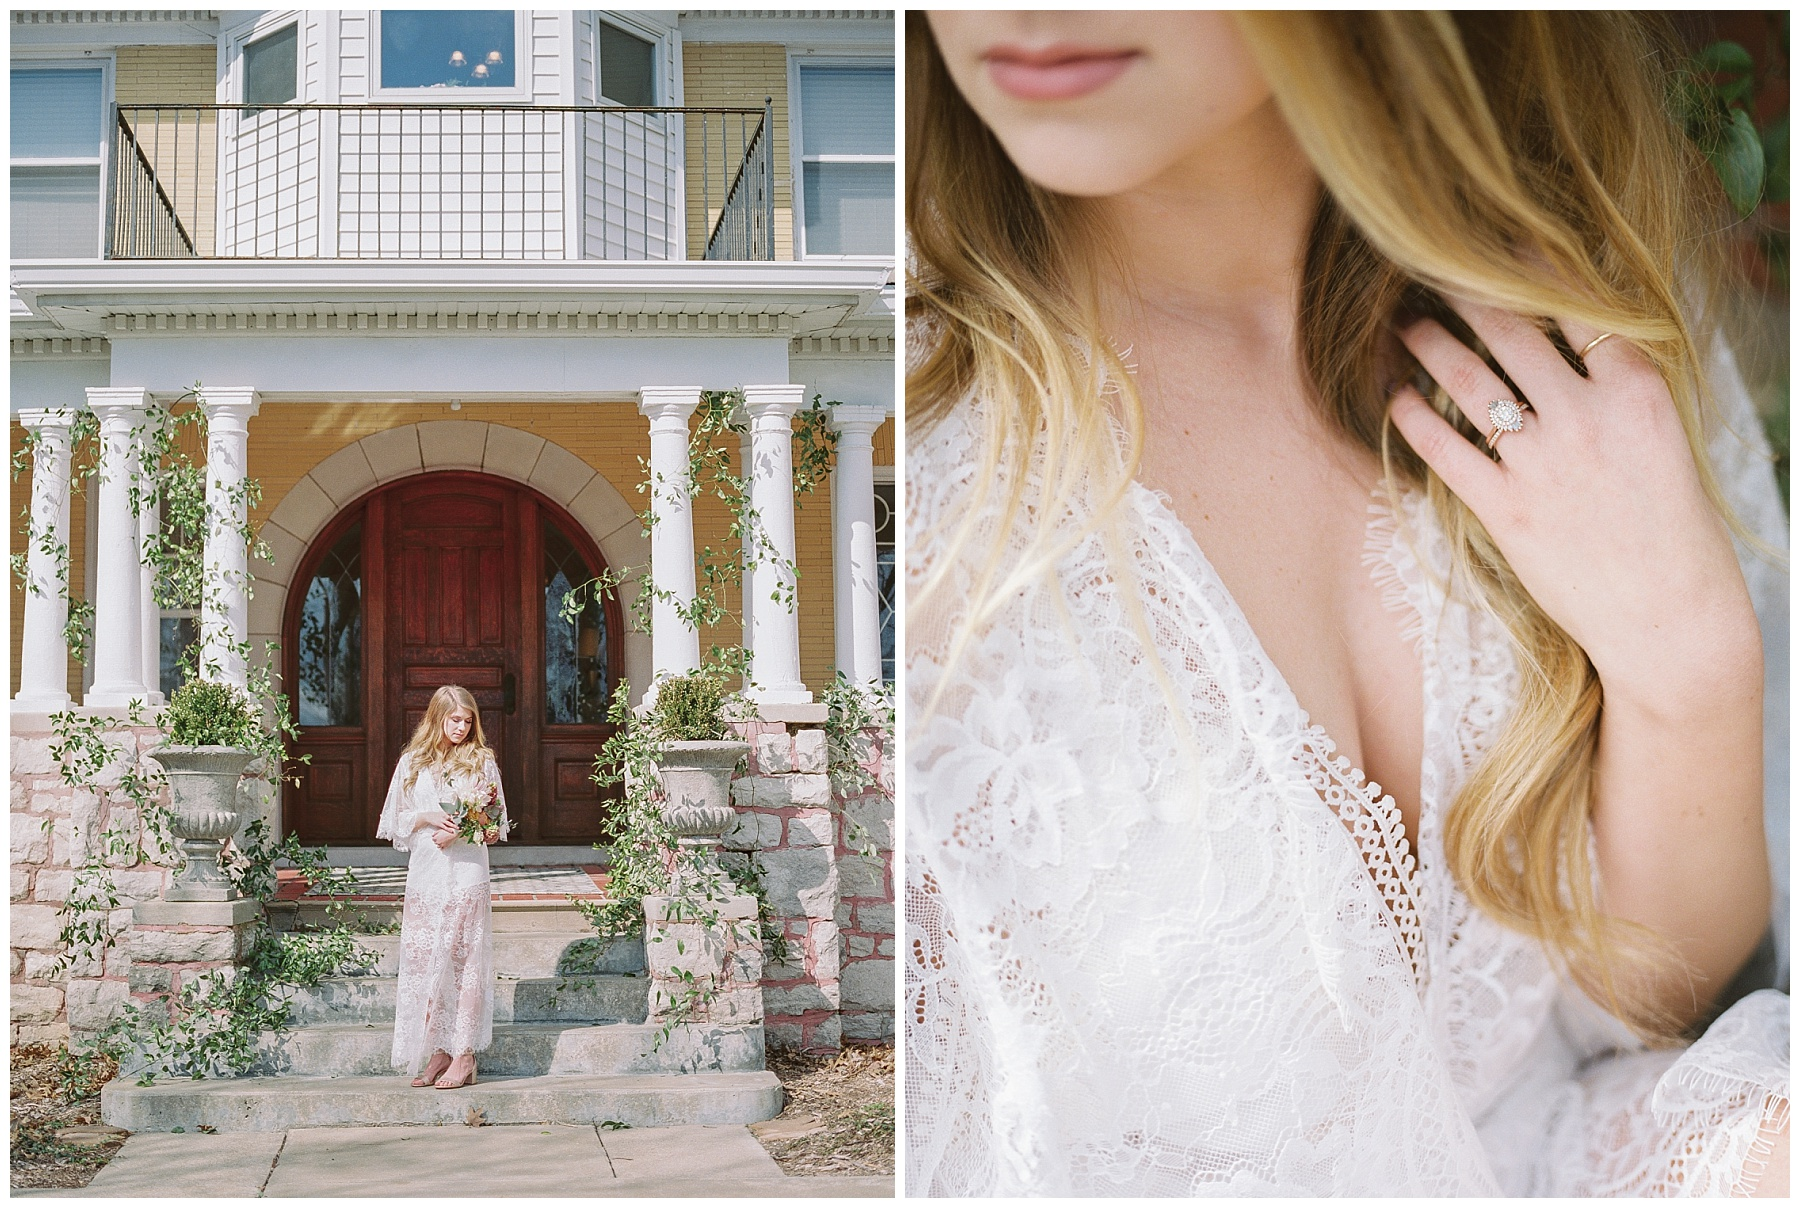 Natural, Intimate, and Organic Bridal Session on Steps of Century Old Bed and Breakfast by Kelsi Kliethermes Photography Best Missouri and Maui Wedding Photographer_0002.jpg